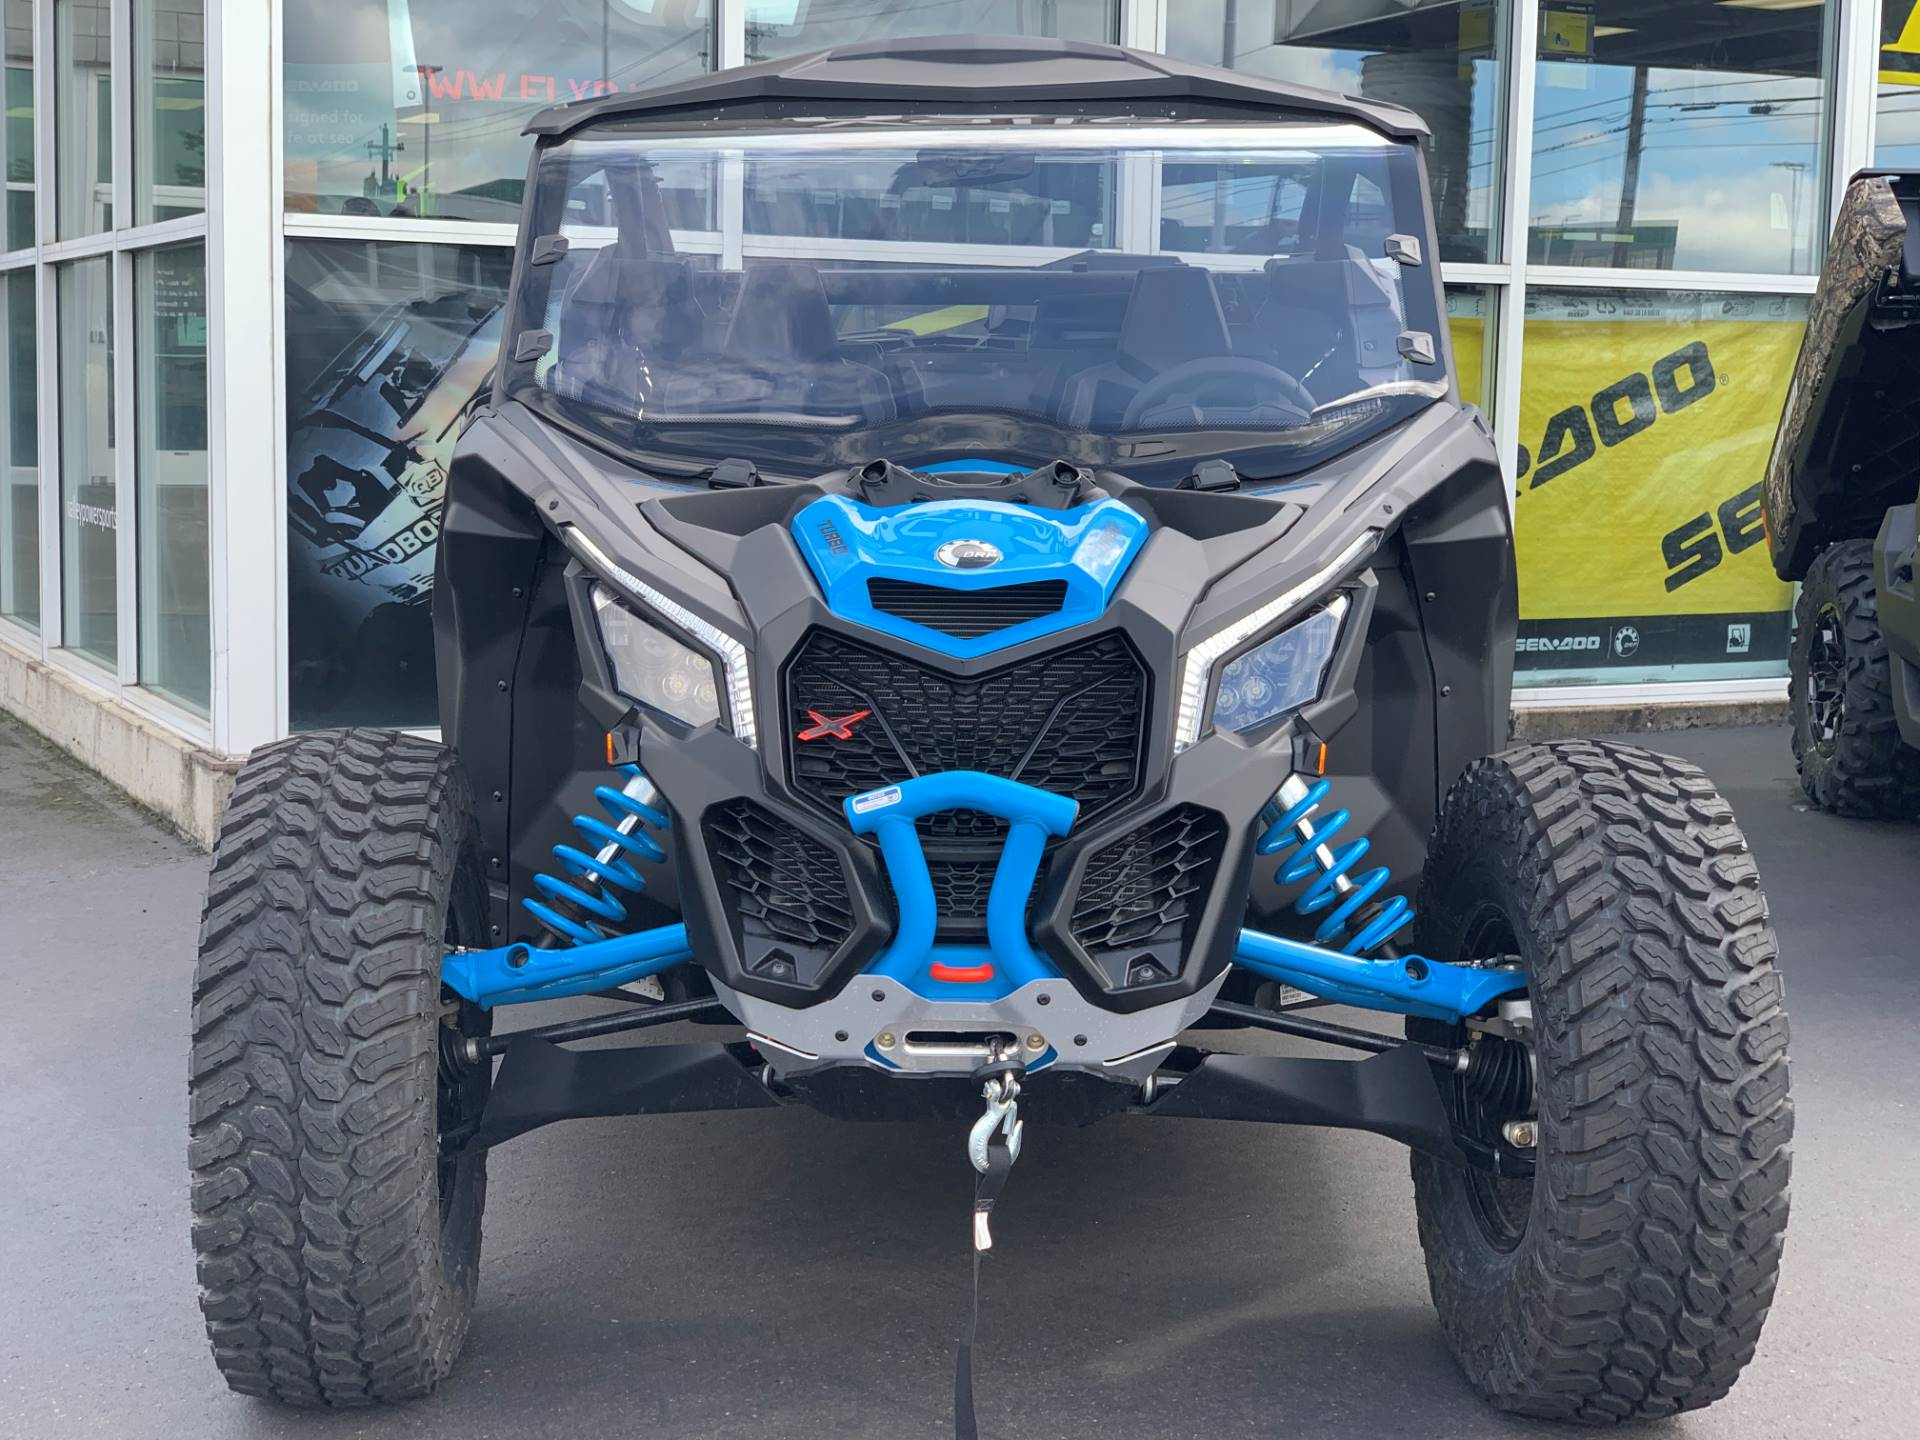 2019 Can-Am Maverick X3 X rc Turbo in Eugene, Oregon - Photo 2